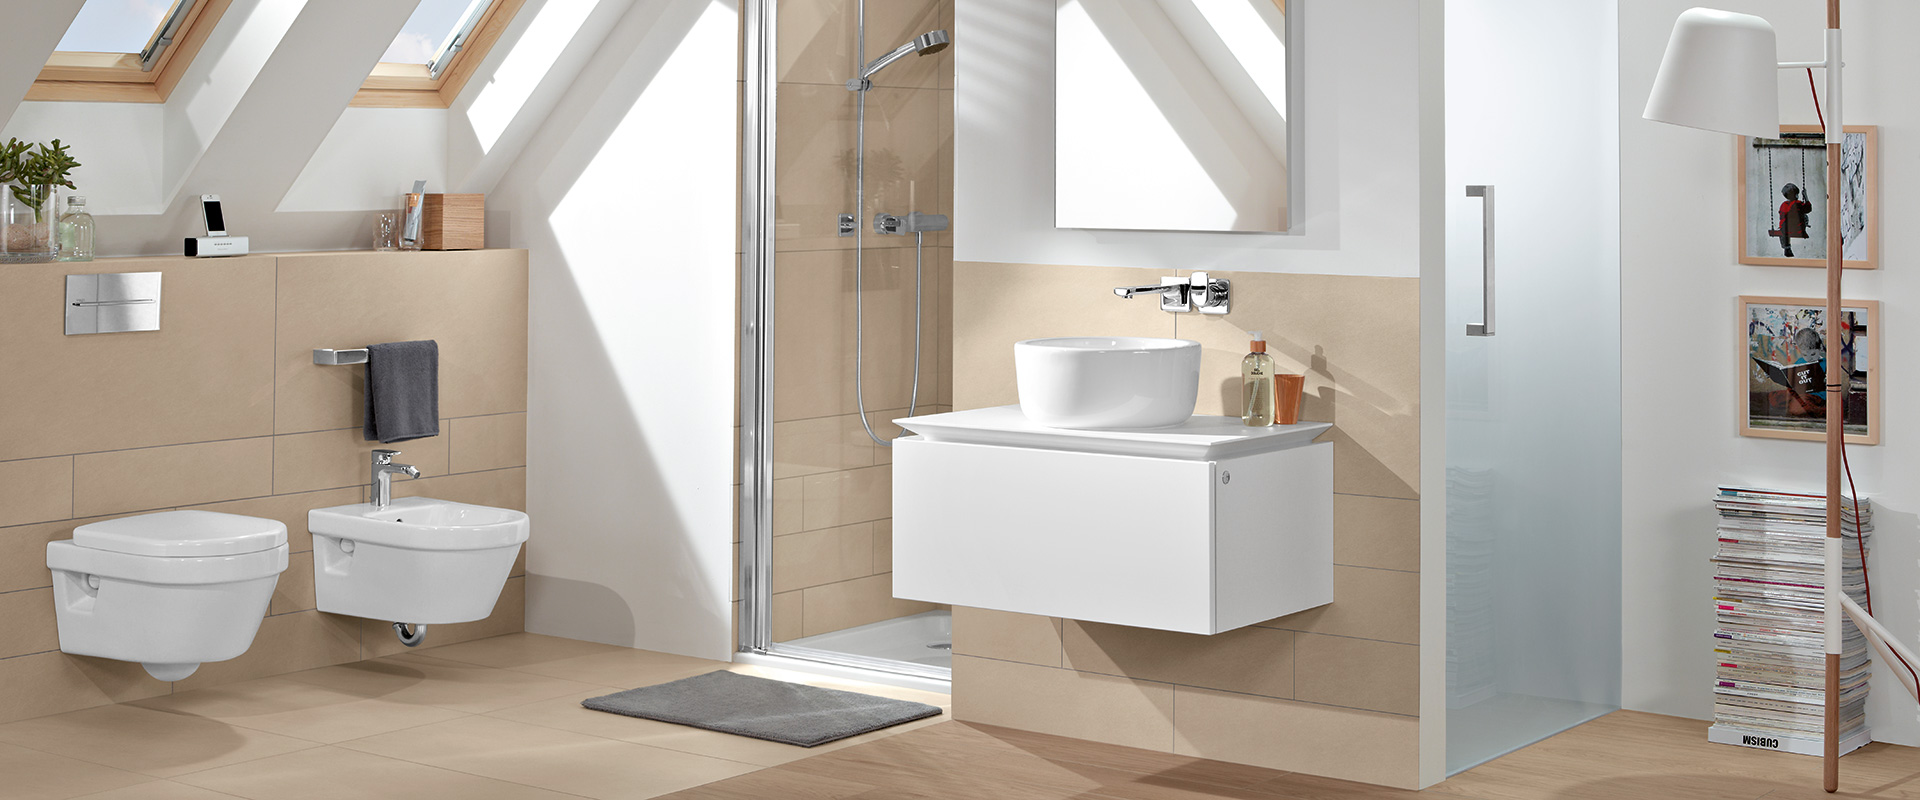 Collection architectura un design atemporel villeroy for Salle de bain villeroy et boch